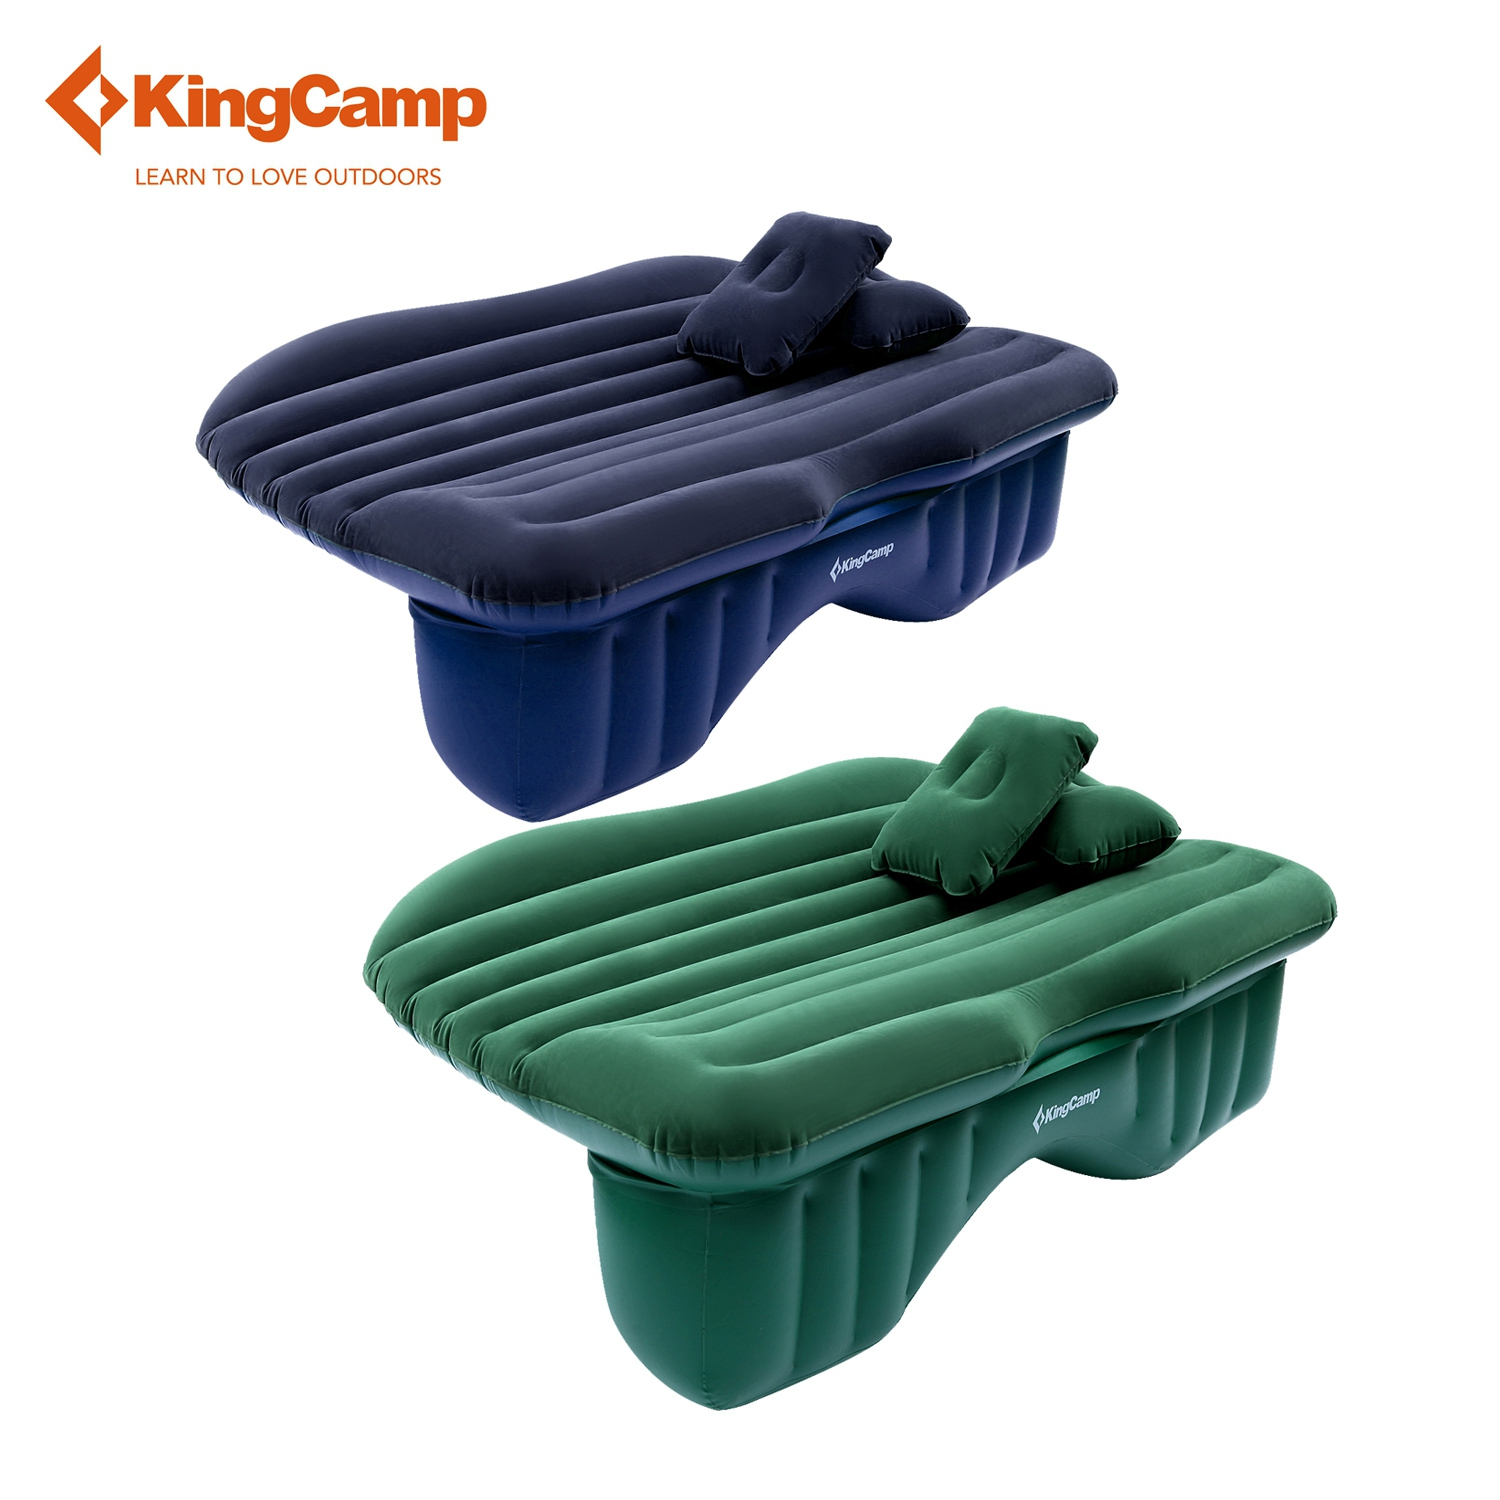 Backseat Inflatable Bed Backseat Inflatable Mattress Promotion Shop For Promotional